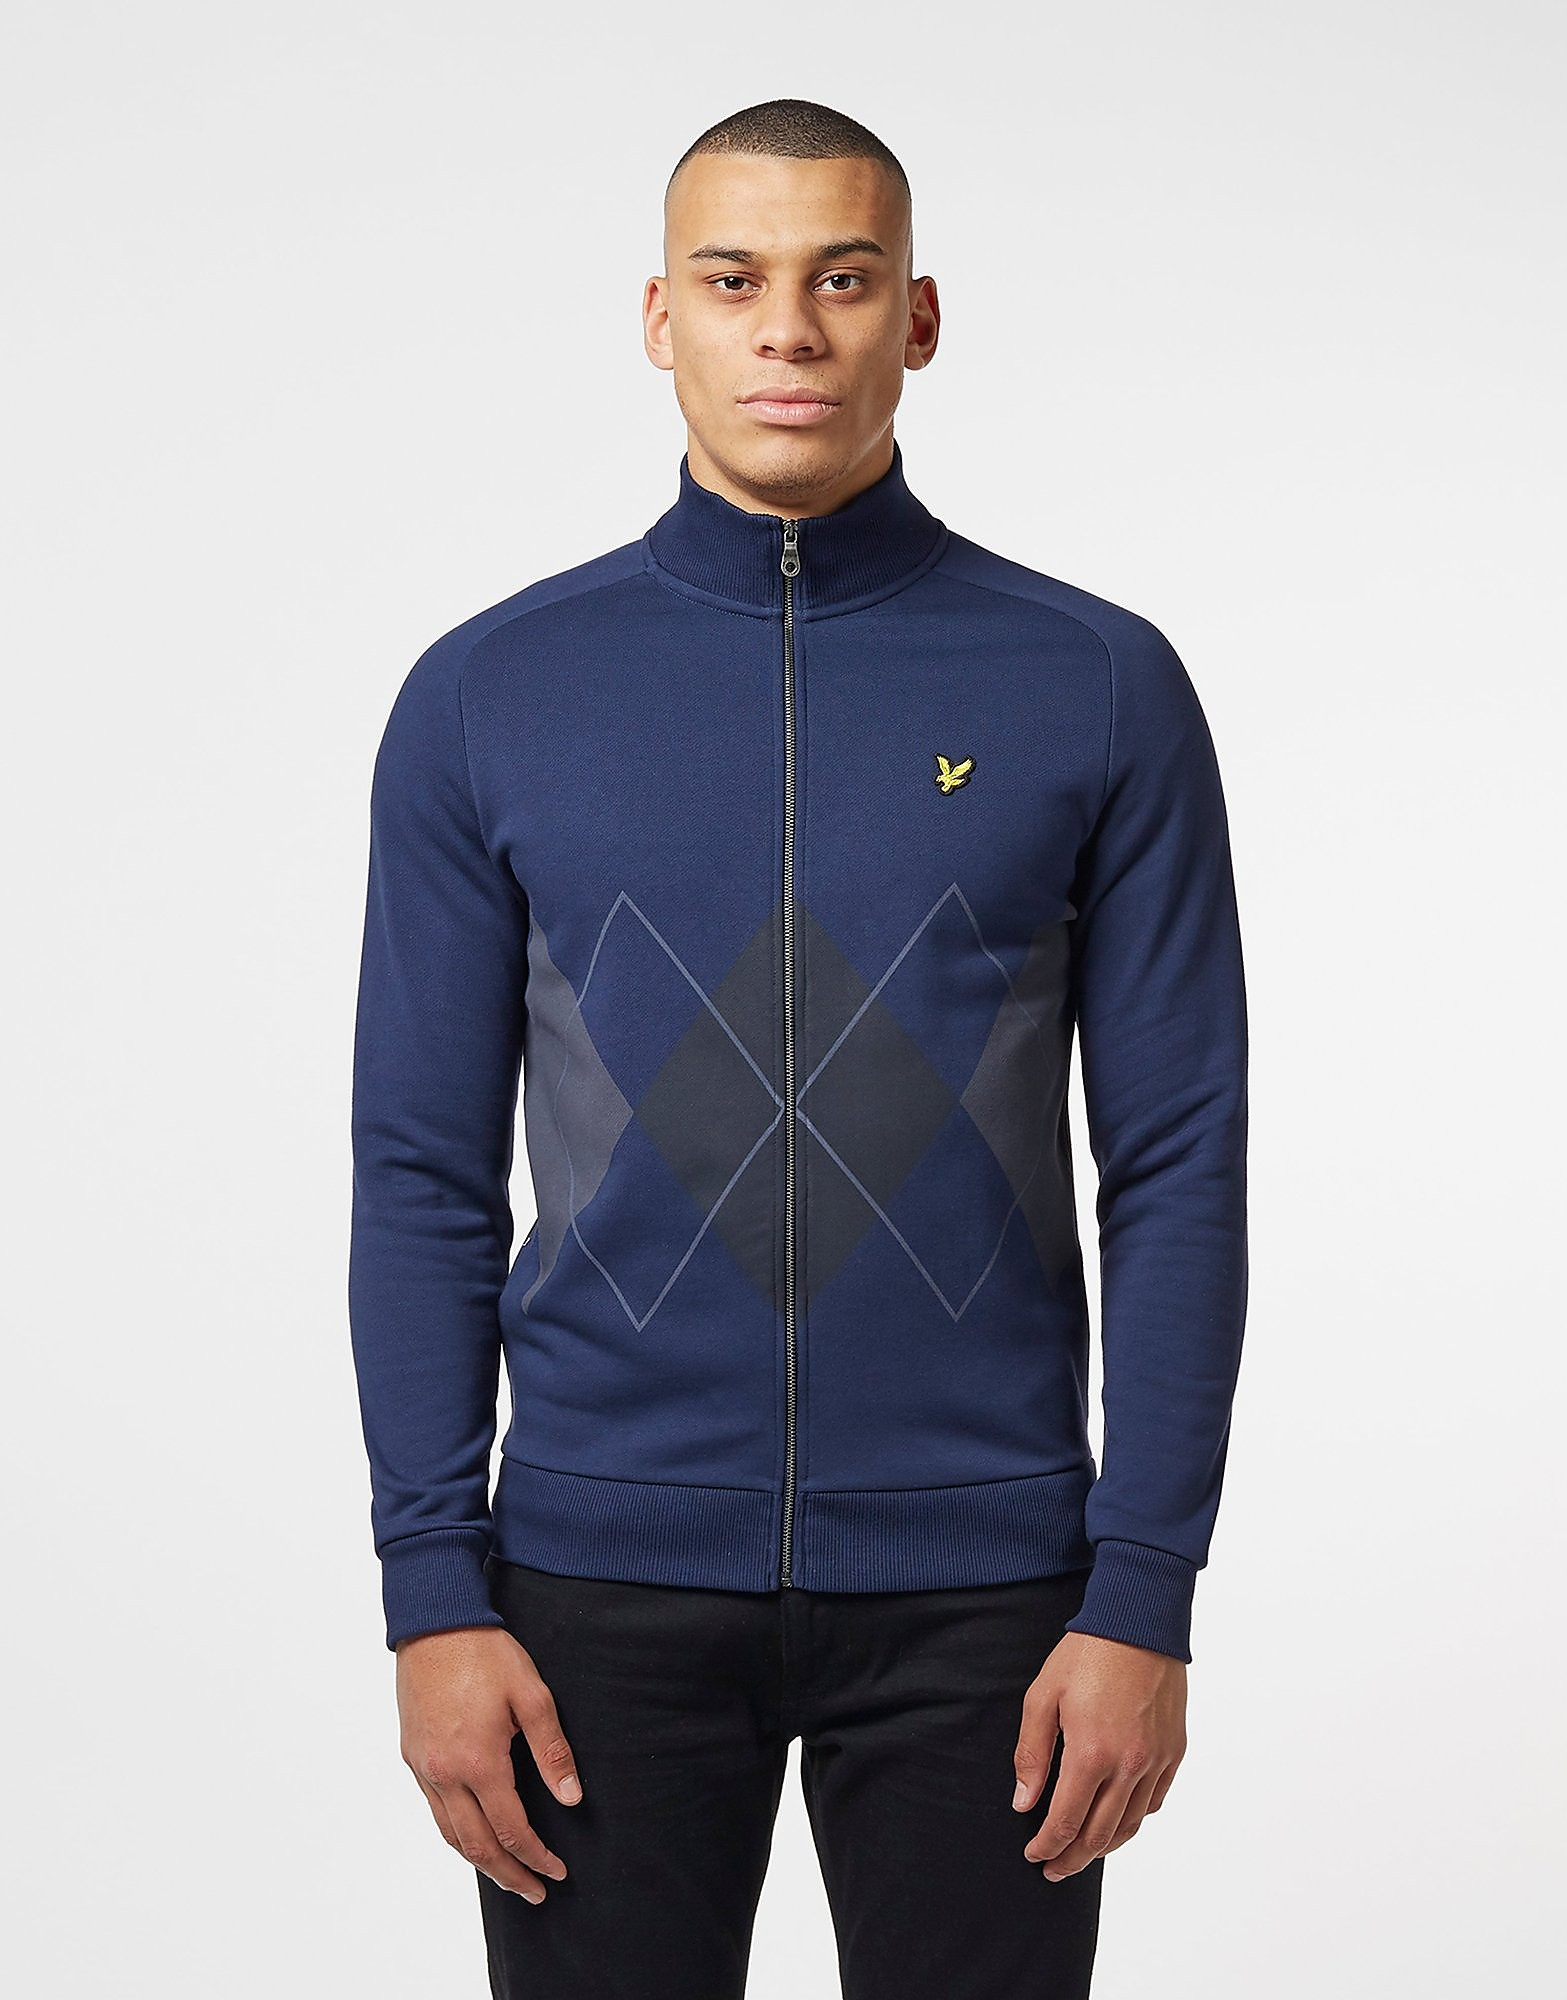 Lyle & Scott Argyle Full Zip Track Top